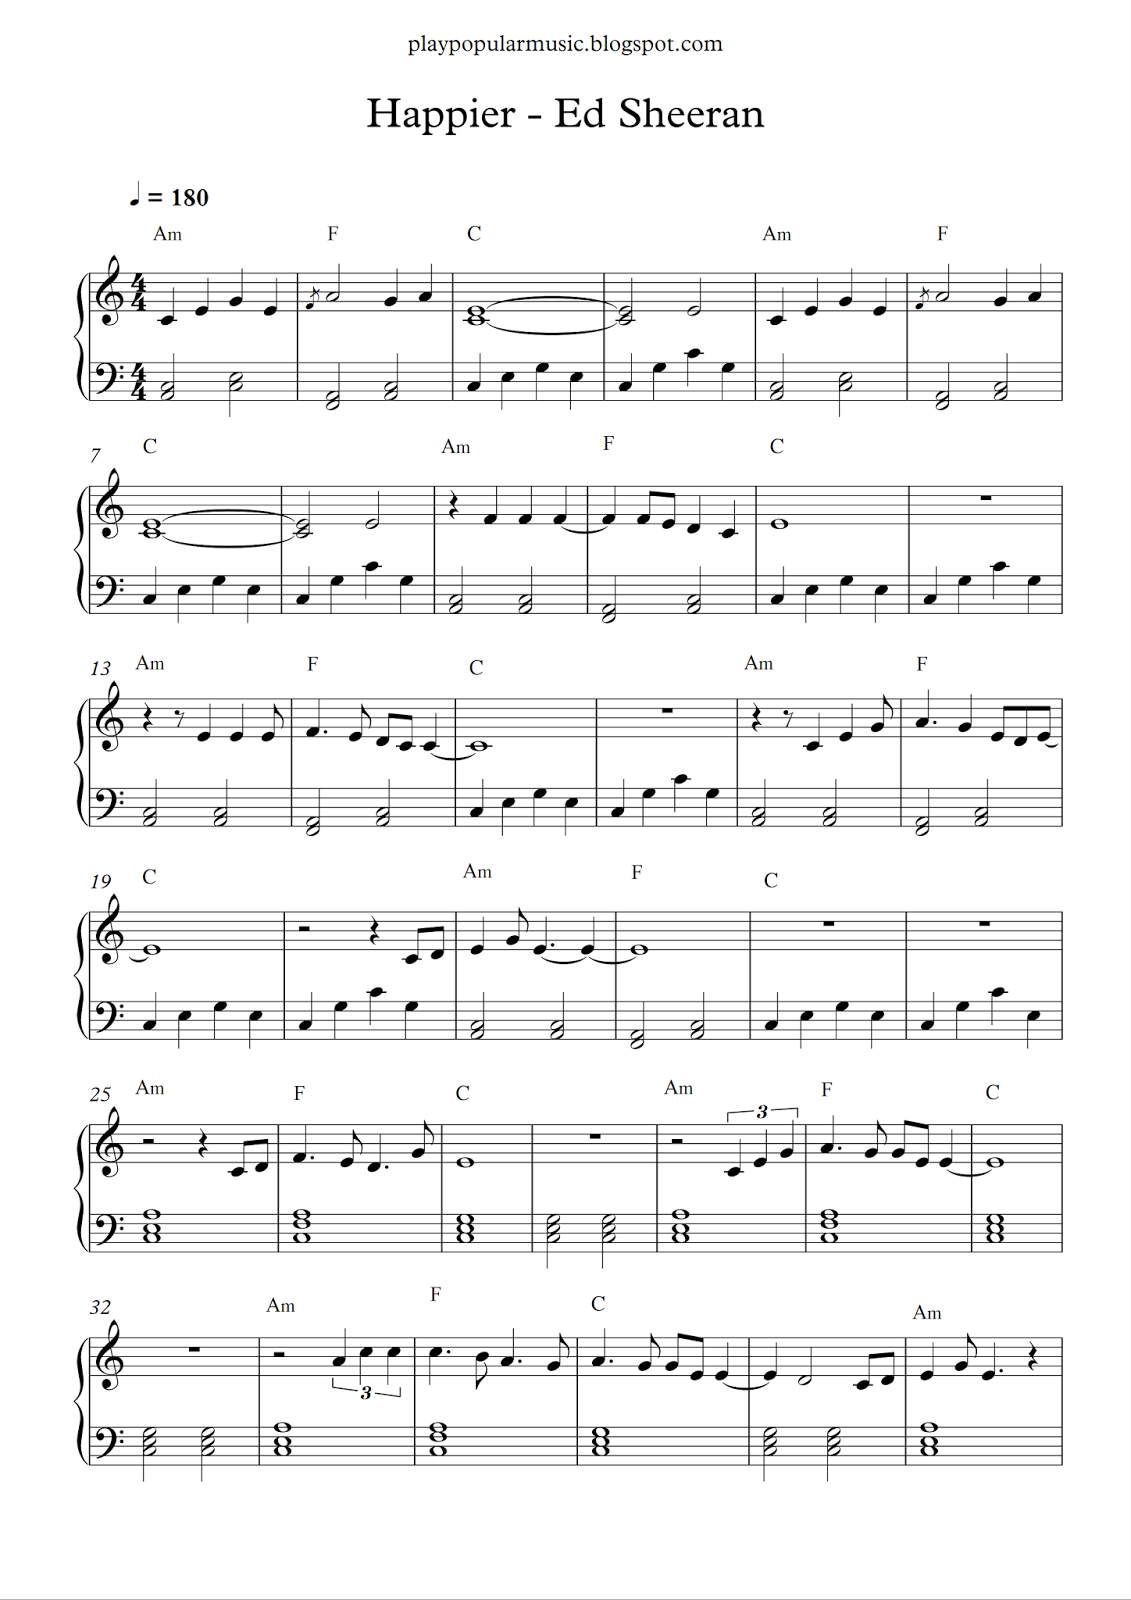 Free piano sheet music: Ed Sheeran - Happier.pdf I could try to ...